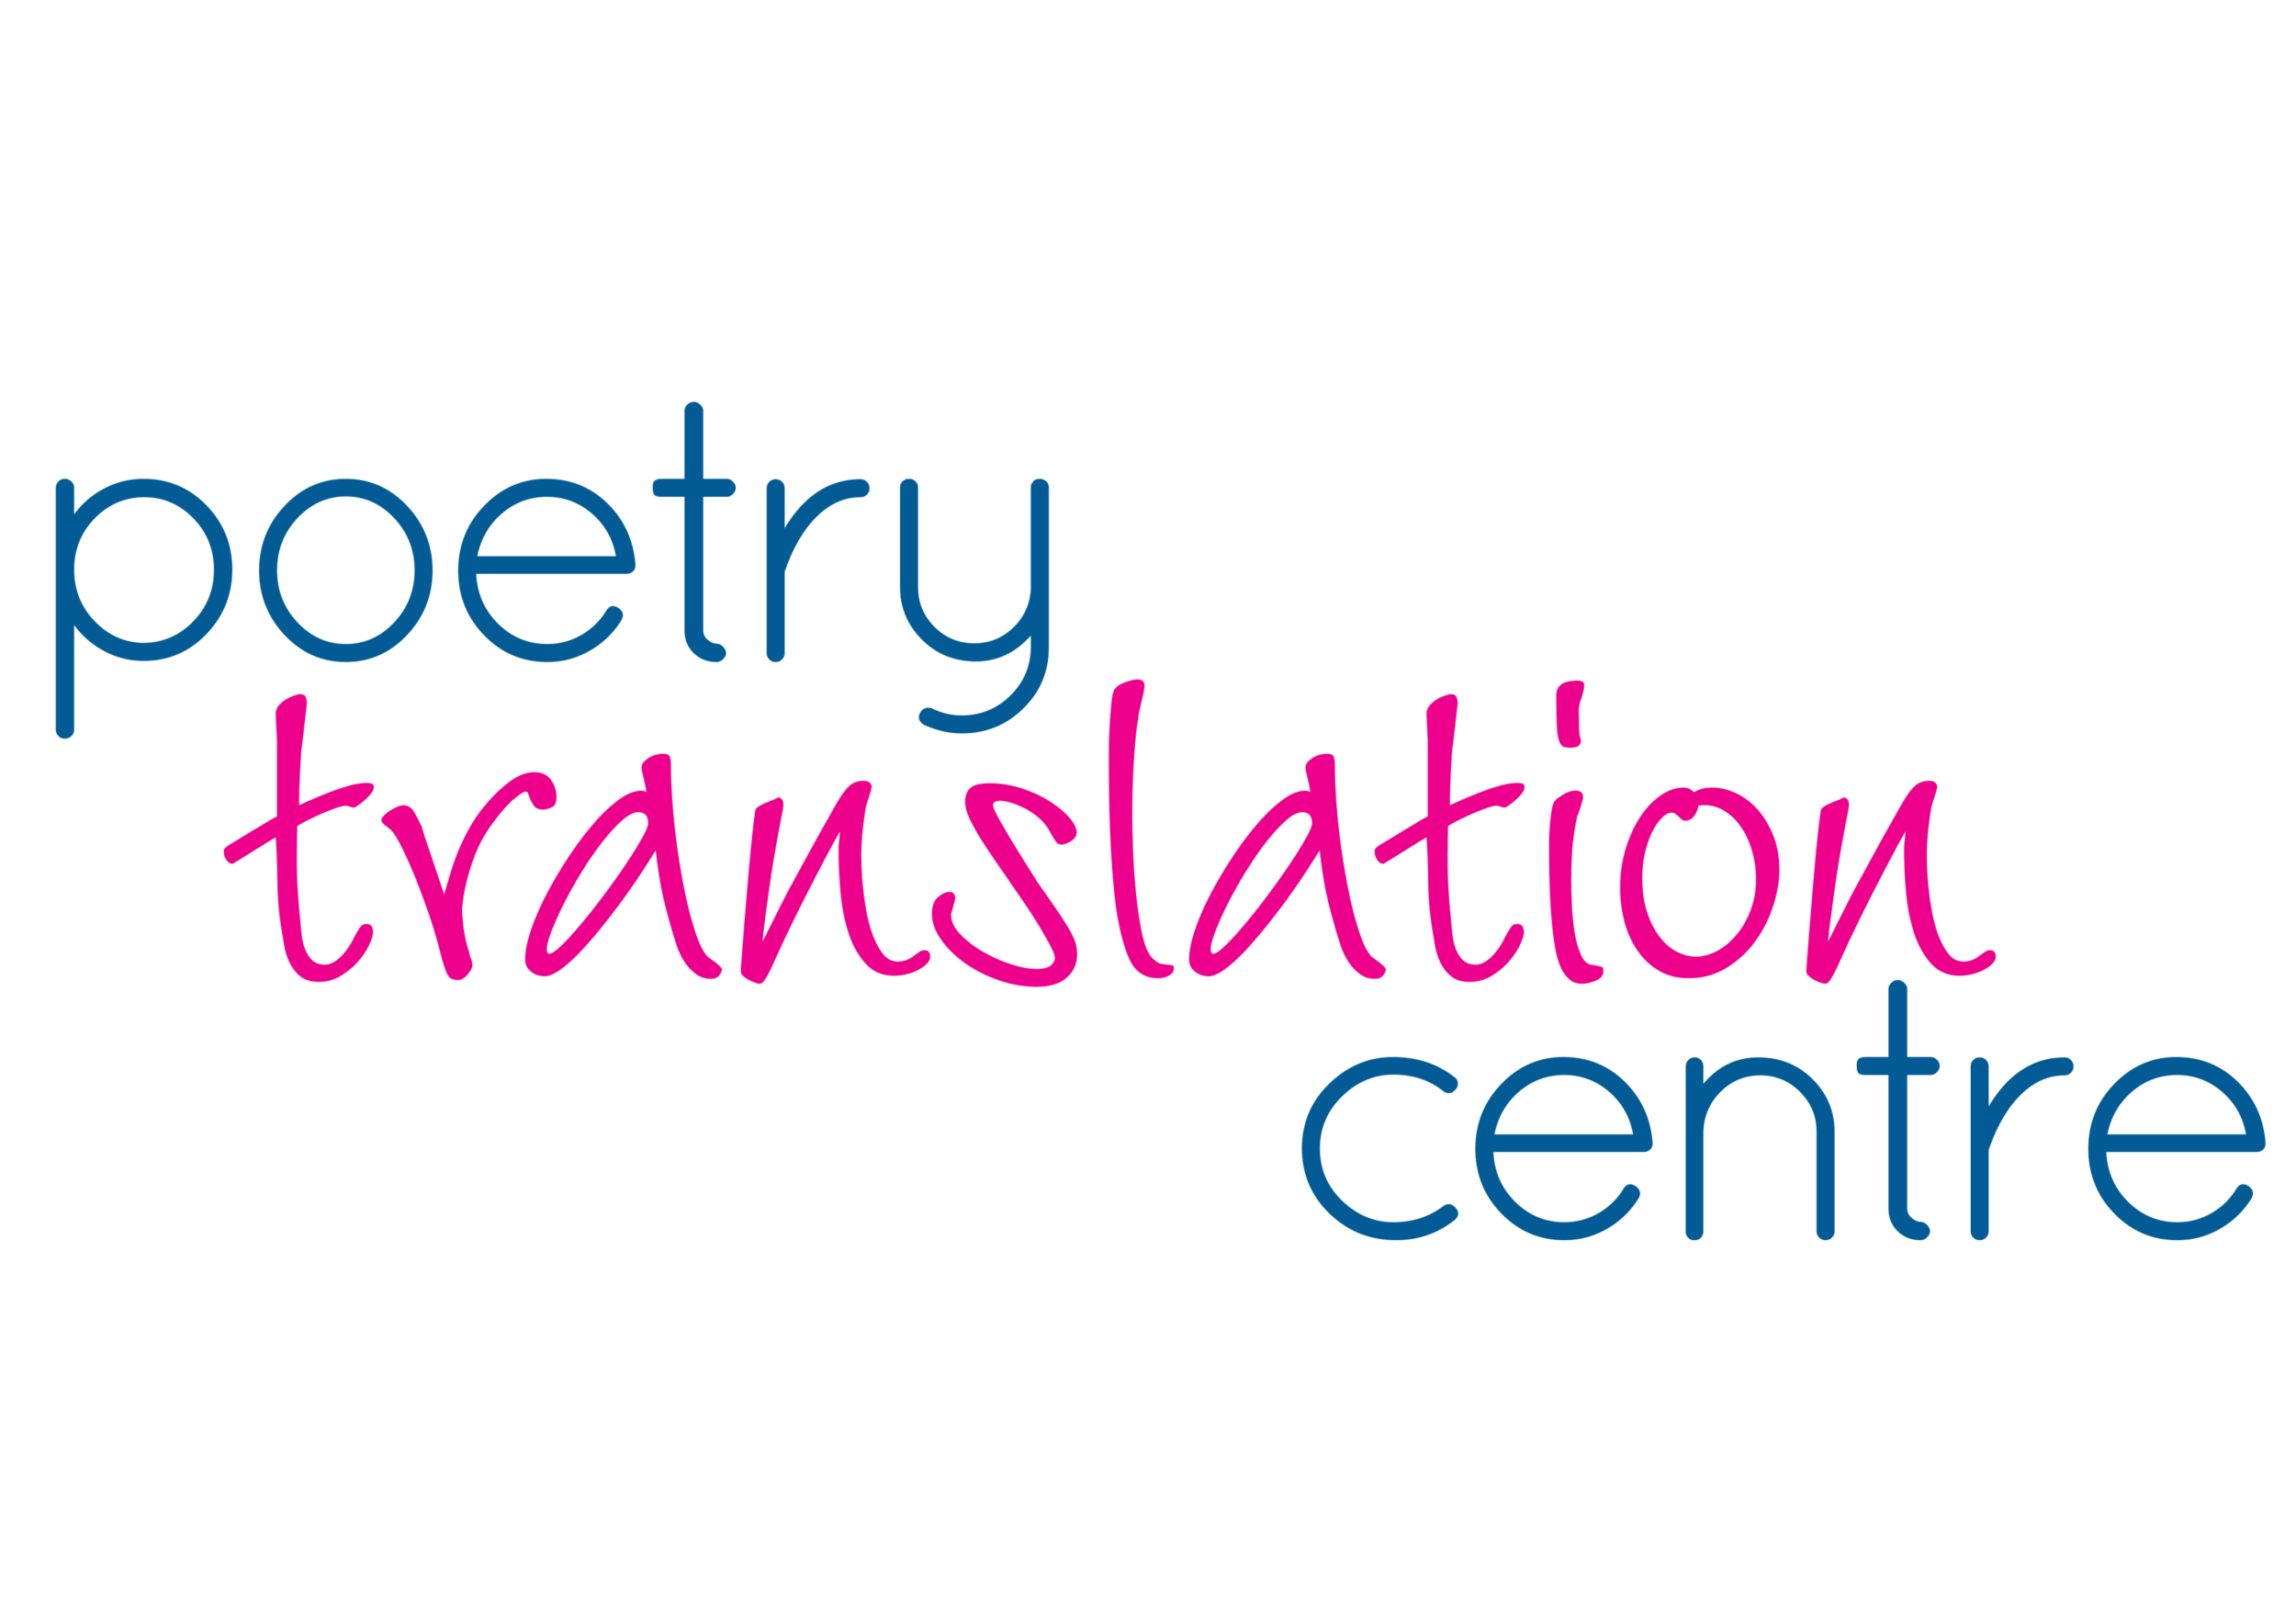 The Poetry Translation Centre   The only UK organisation dedicated to translating, publishing and promoting contemporary poetry from Africa, Asia and Latin America. The PTC introduces extraordinary poets from around the world to new audiences through books, online resources and bilingual events, forging enduring relations with diaspora communities, and exploring the craft of translation through hands-on workshops.